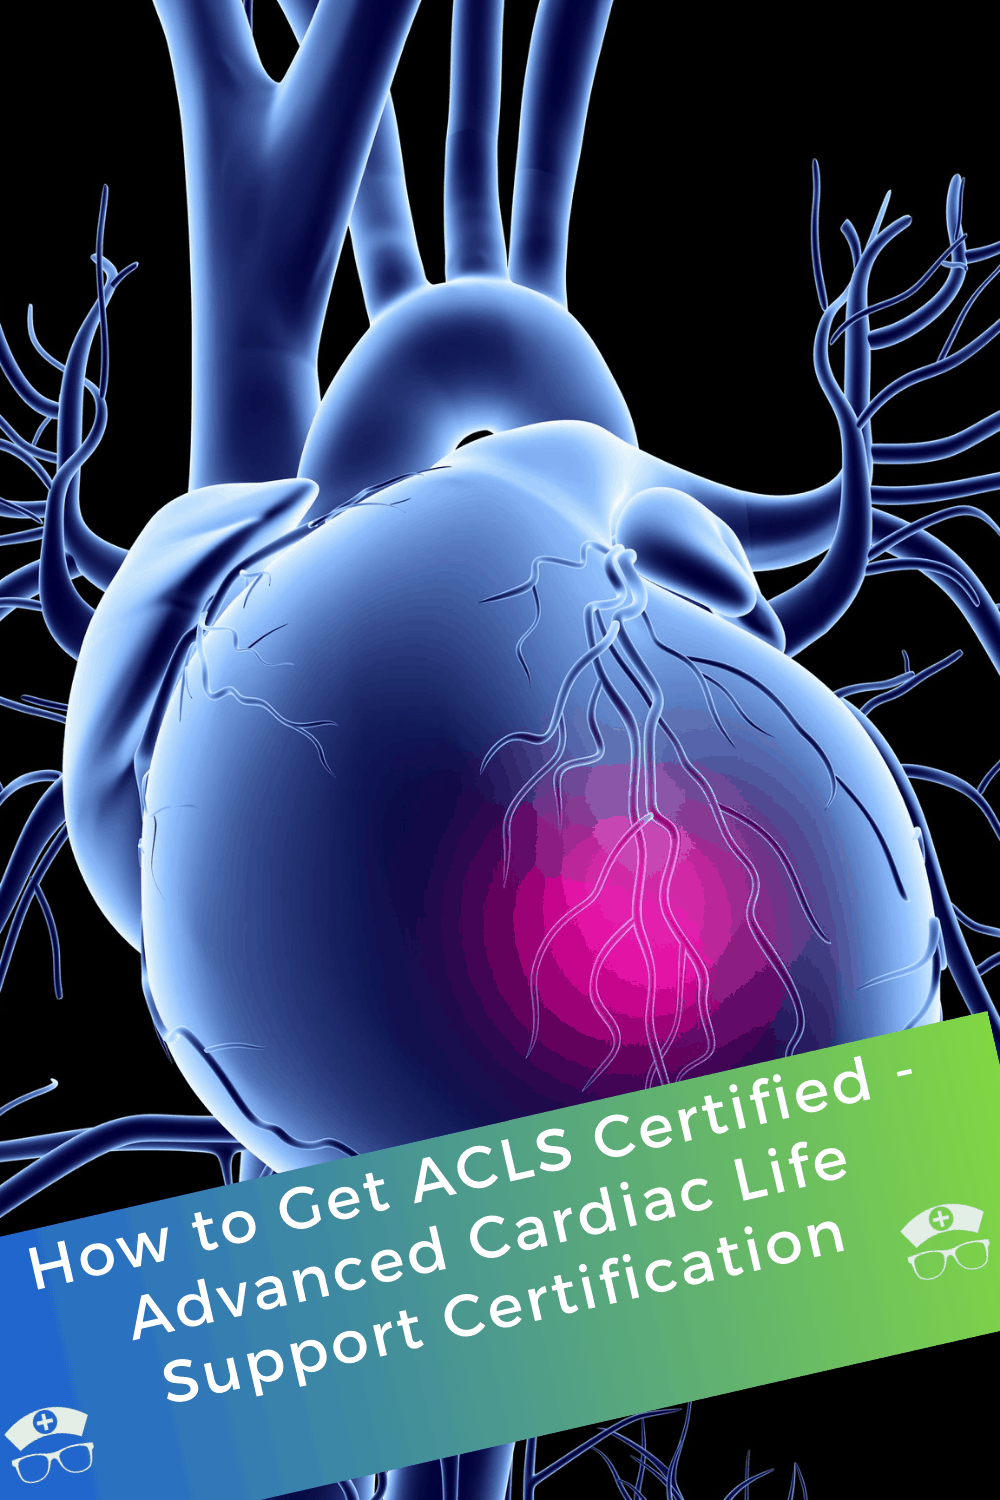 How to Get ACLS Certified - Advanced Cardiac Life Support Certification. This is what you need to know about how to get ACLS certified. Find the best advanced cardiac life support class near you. #thenerdynurse #nurse #nurses #ACLS #cardiac #lifesupport #certifications #cardiaclifesupport